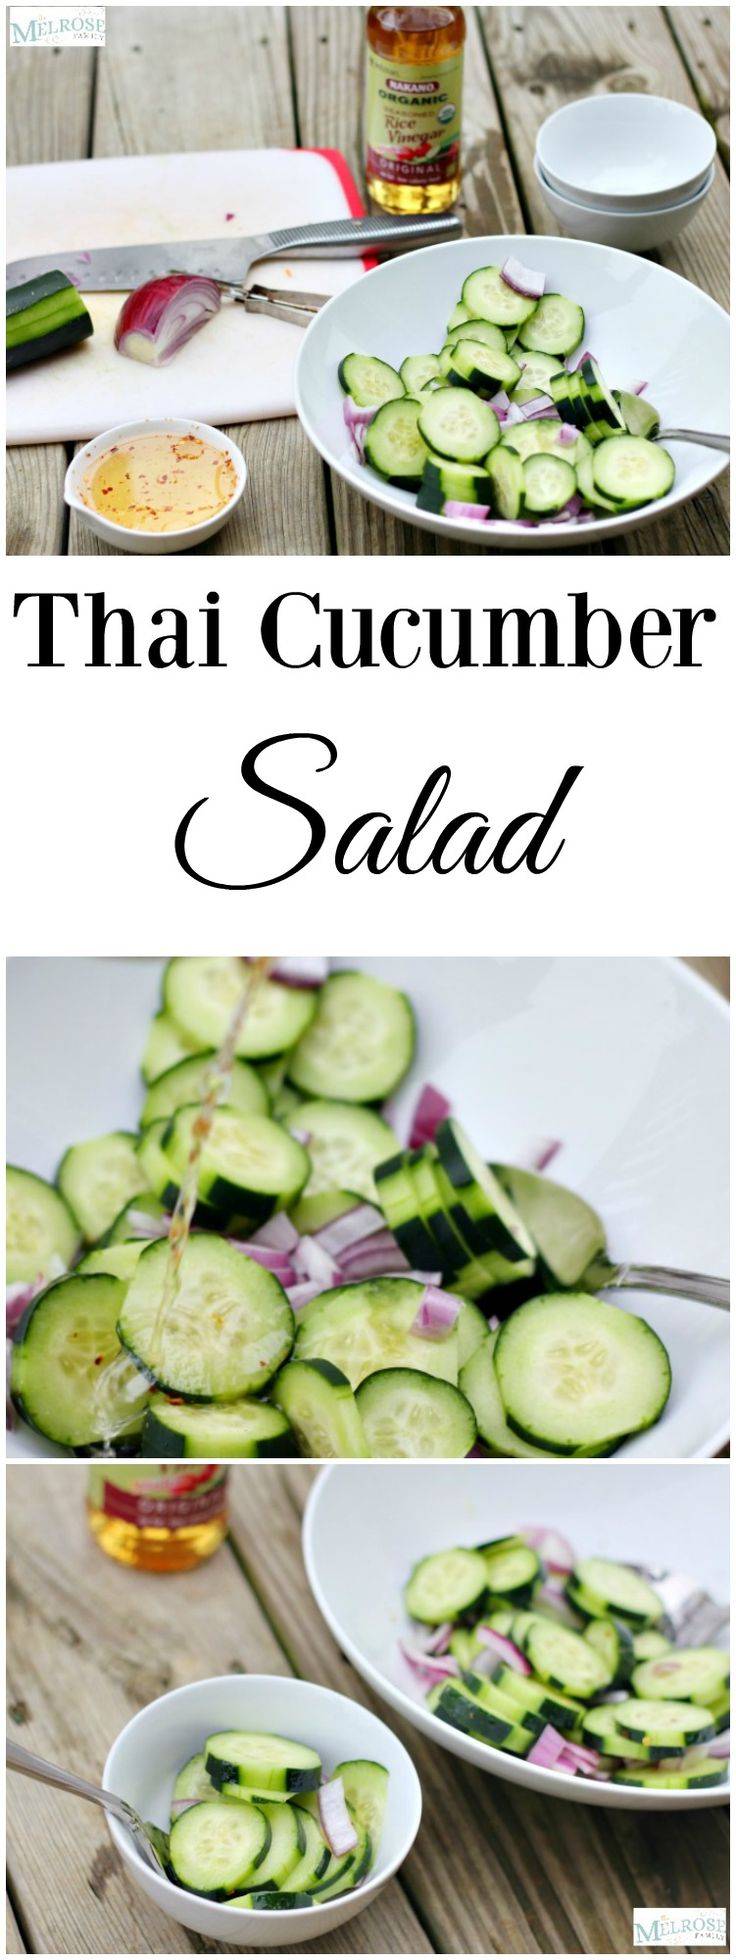 Looking for a healthier side dish or lunch idea? This Thai Cucumber Salad is the perfect lunch idea thanks to Nakano rice vinegars. #ad